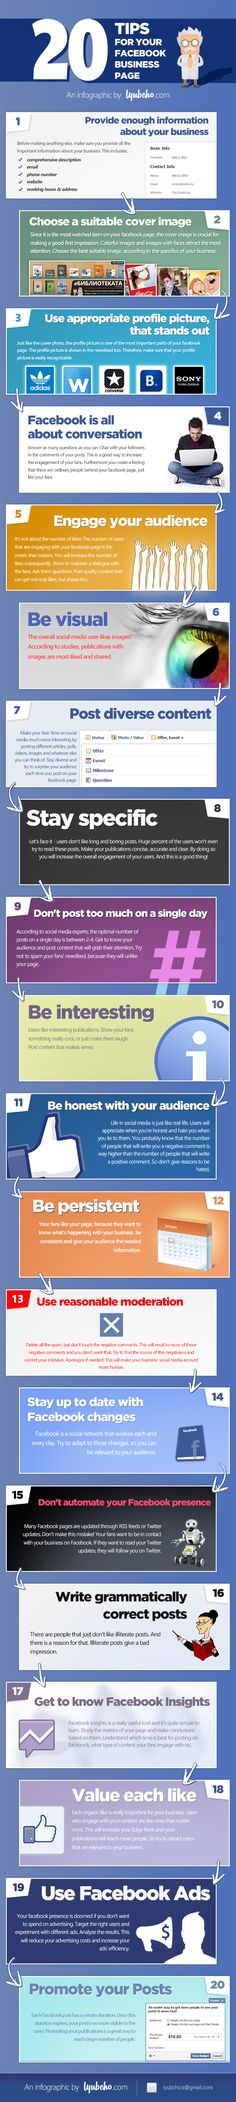 20 tips that can be used to increase your #Facebook presence and is a must read for anyone who wants to get the most out of their Facebook page